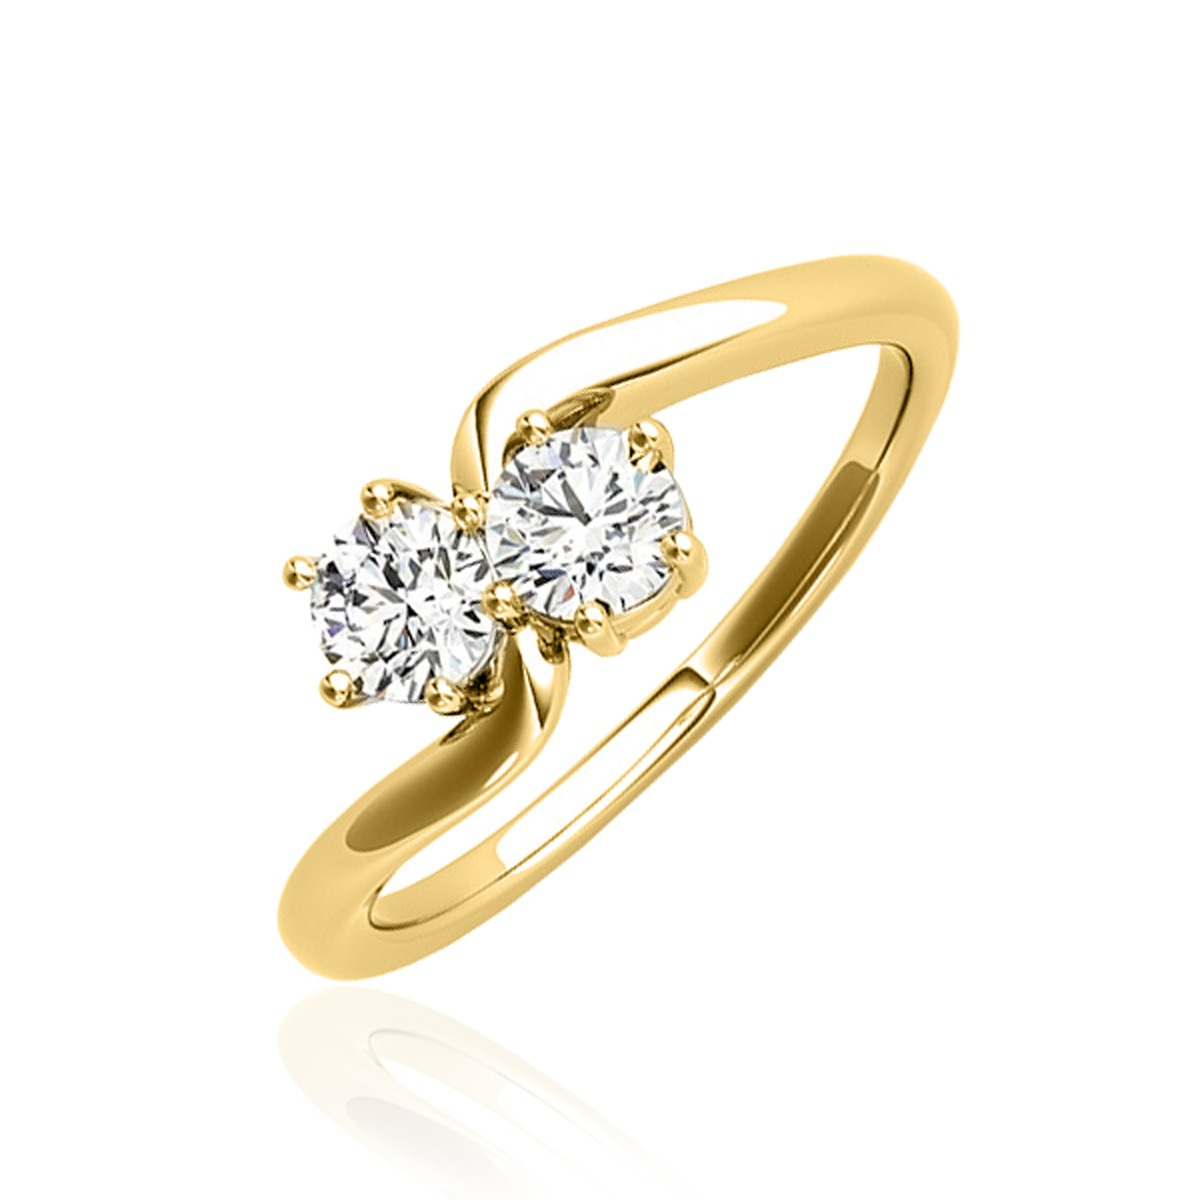 1/4 Carat T.W. Round Cut Diamond Two Stone Ring 14K Yellow Gold